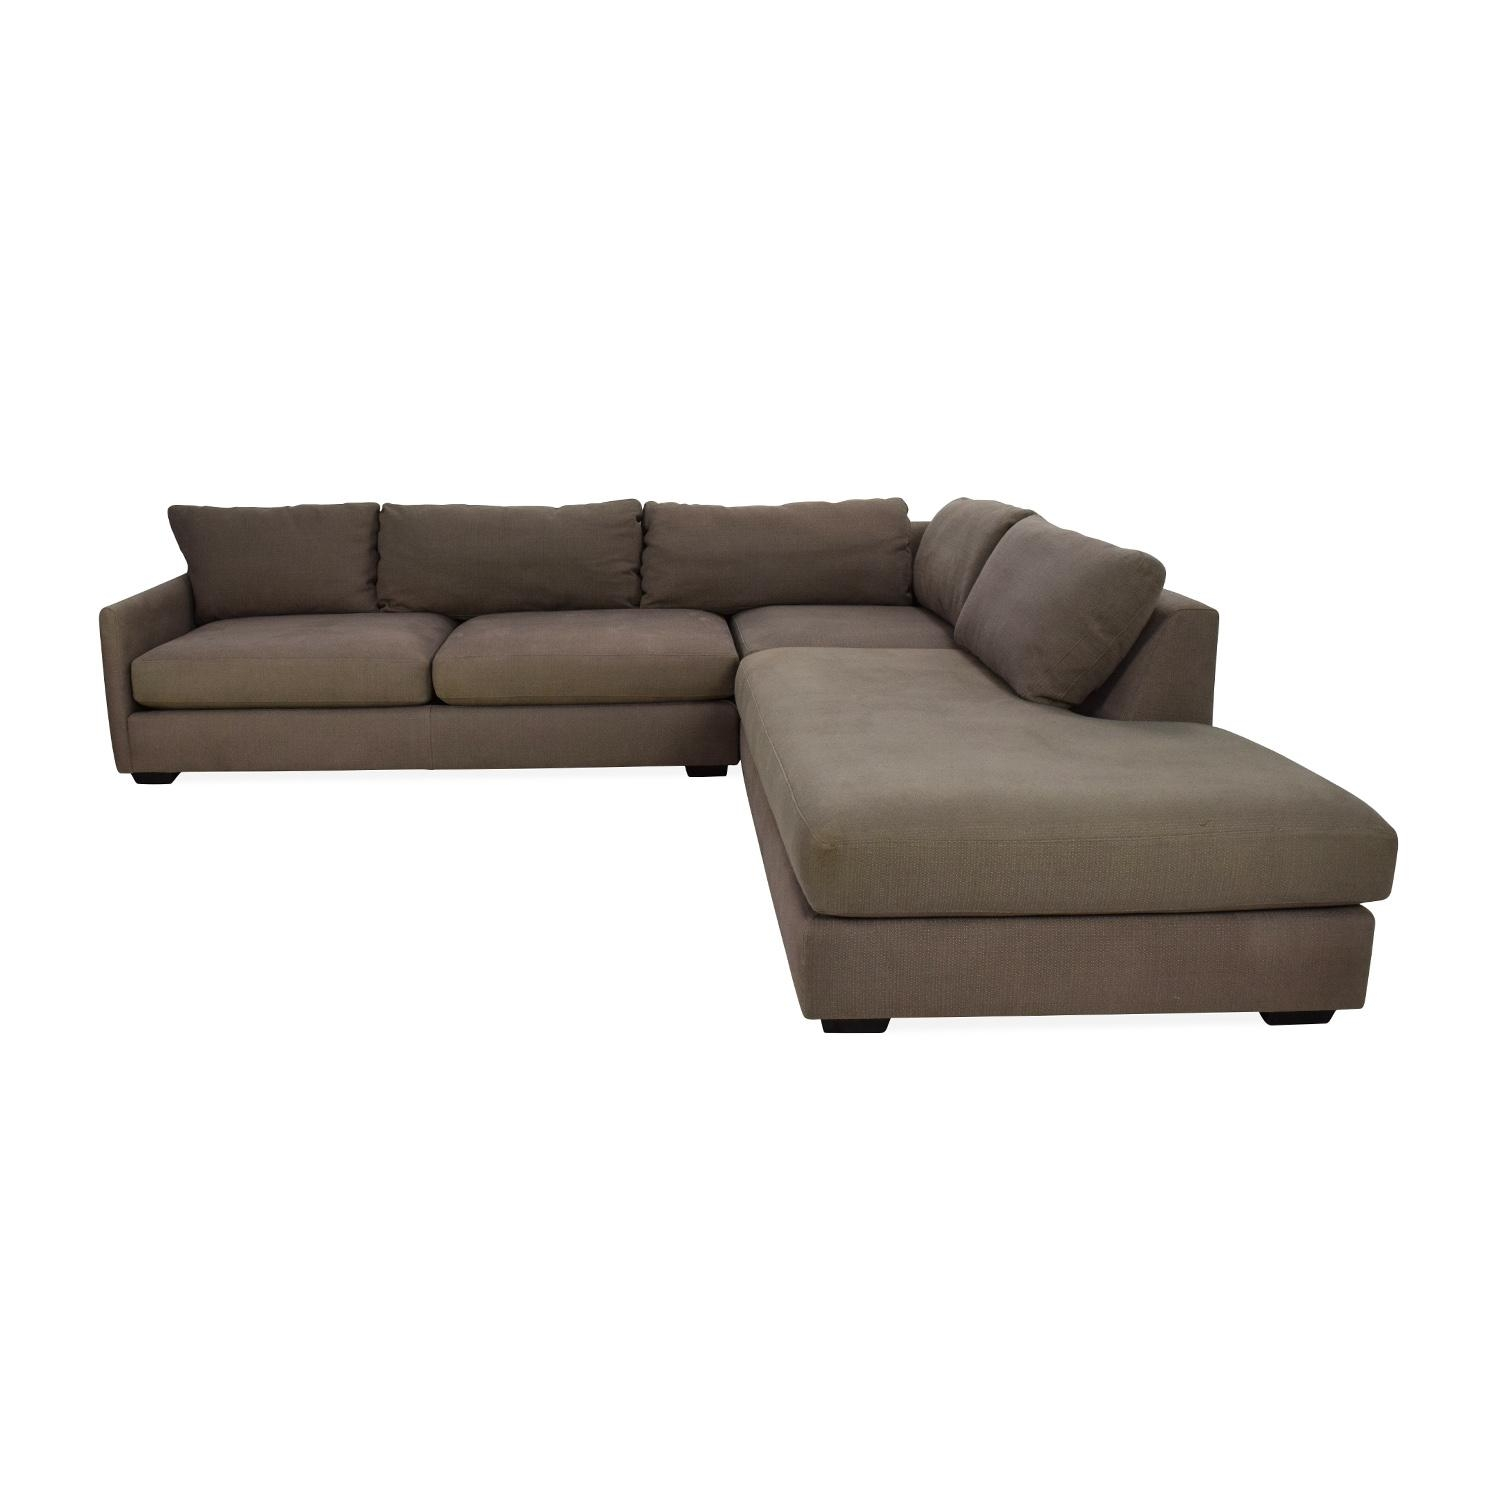 20 Best Collection Of Used Sectionals